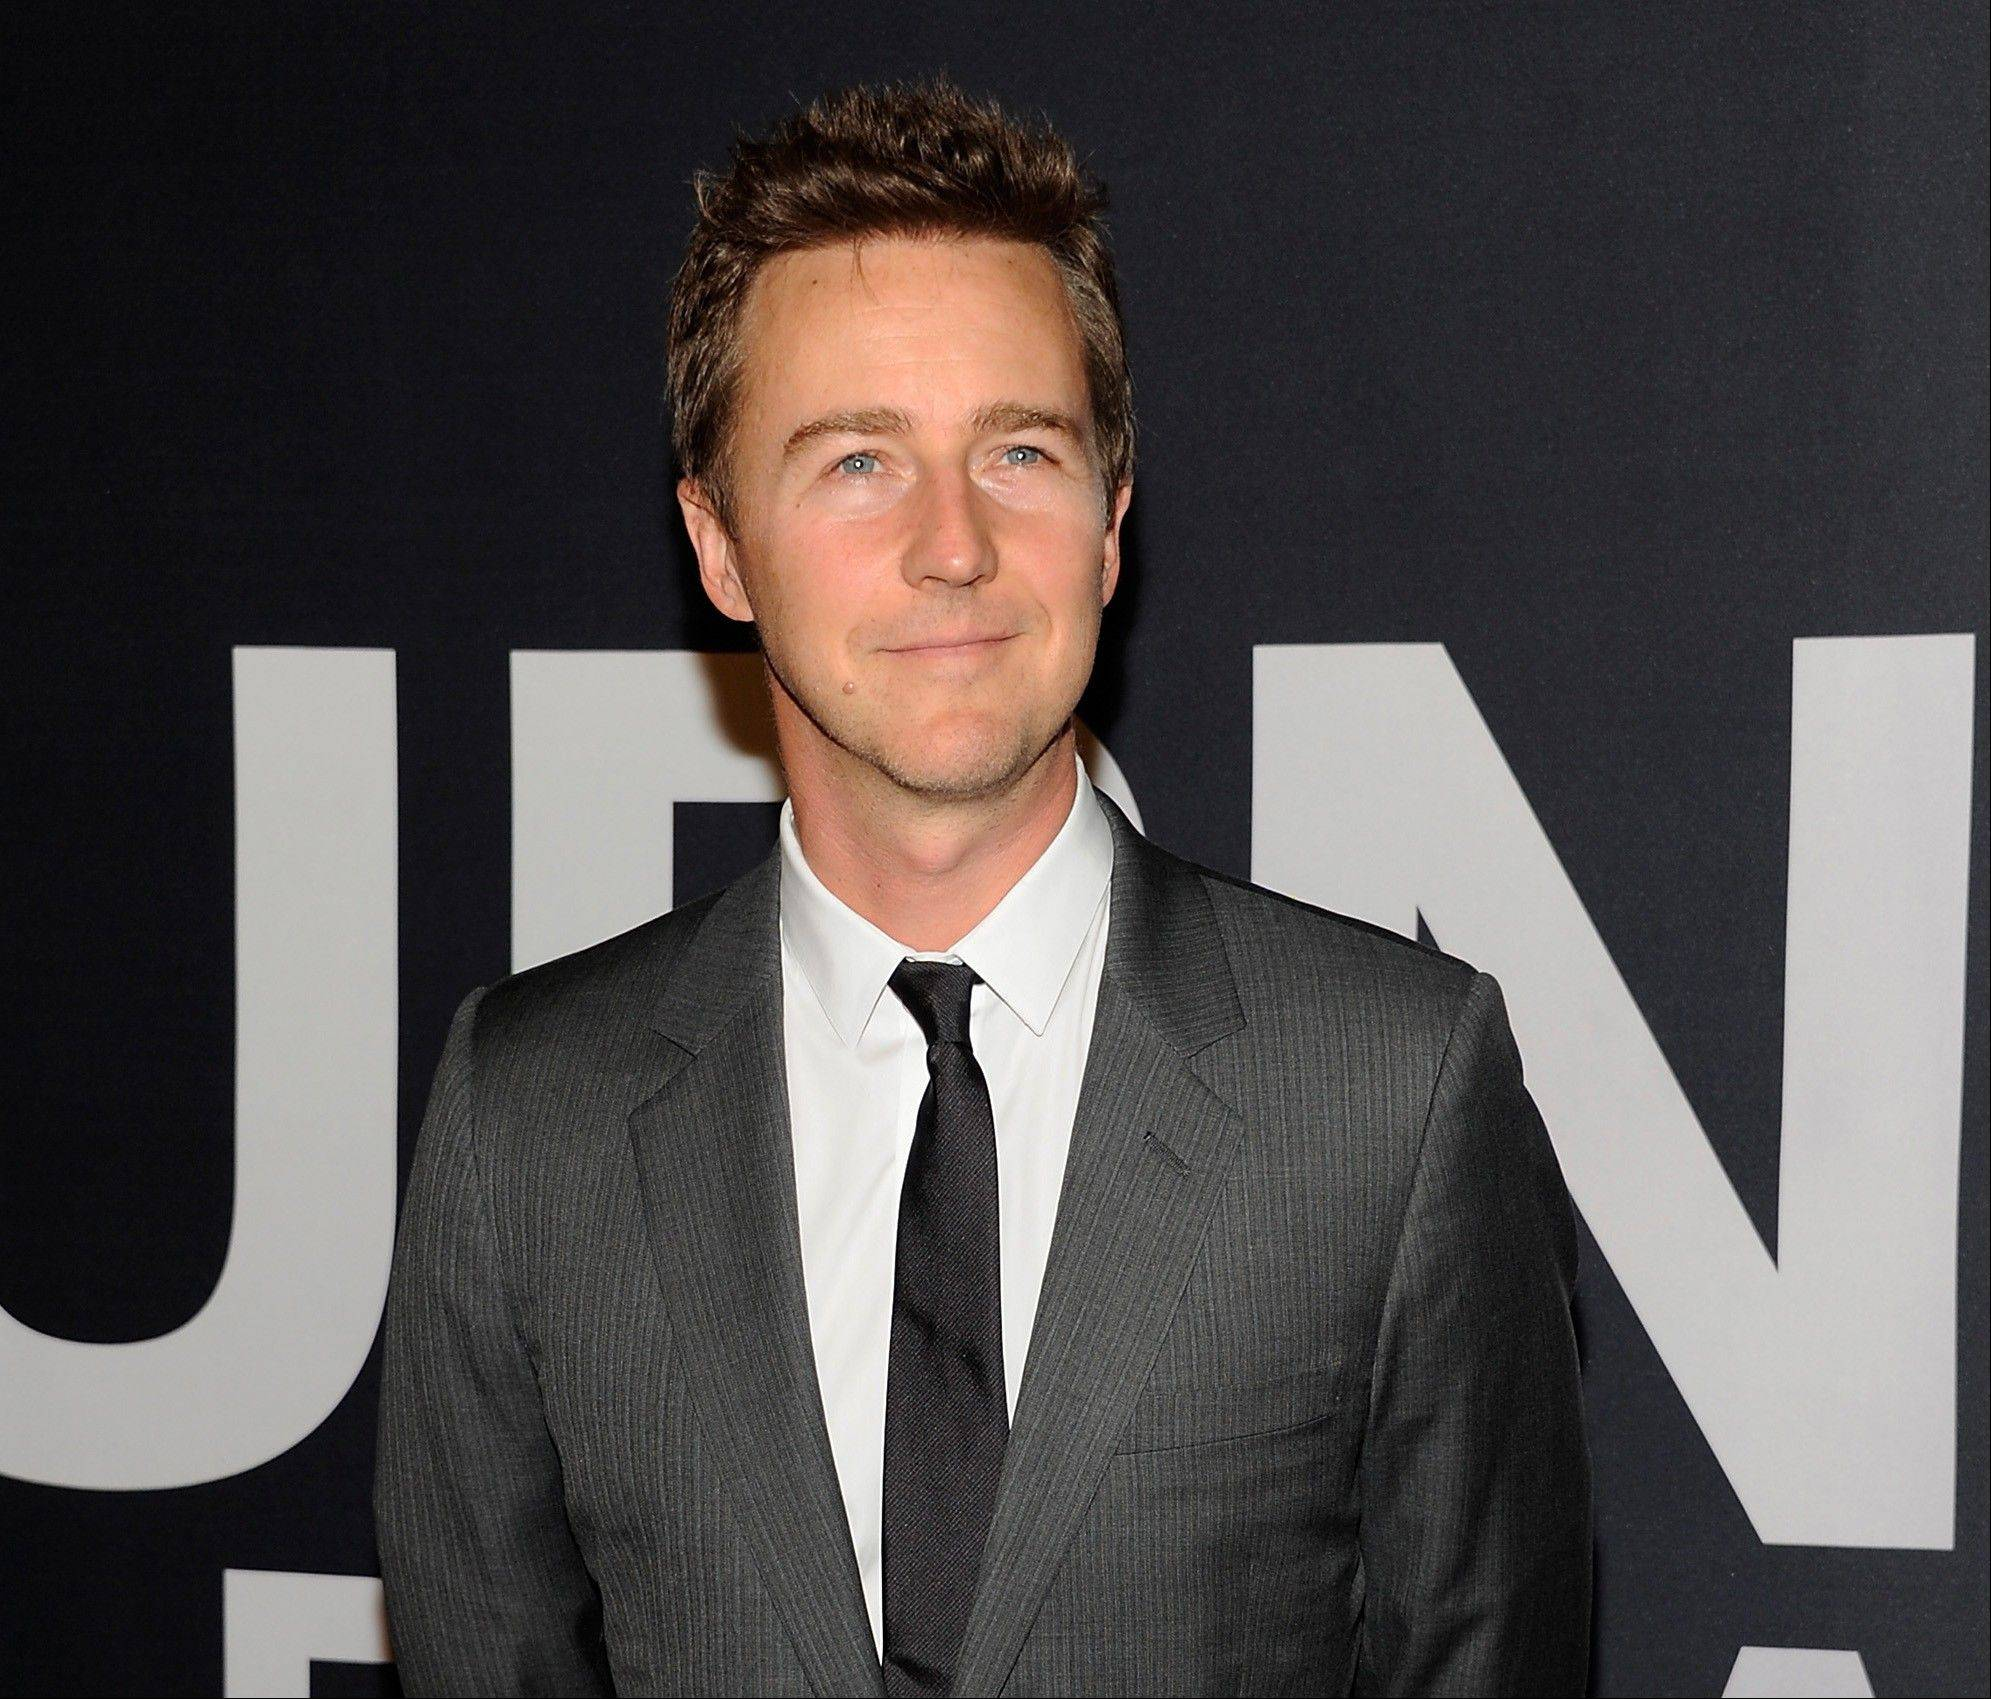 Actor Edward Norton, Jonah Hill, Snoop Dogg and several other stars are playing in a celebrity tournament of the popular online game �Words With Friends� for charity.